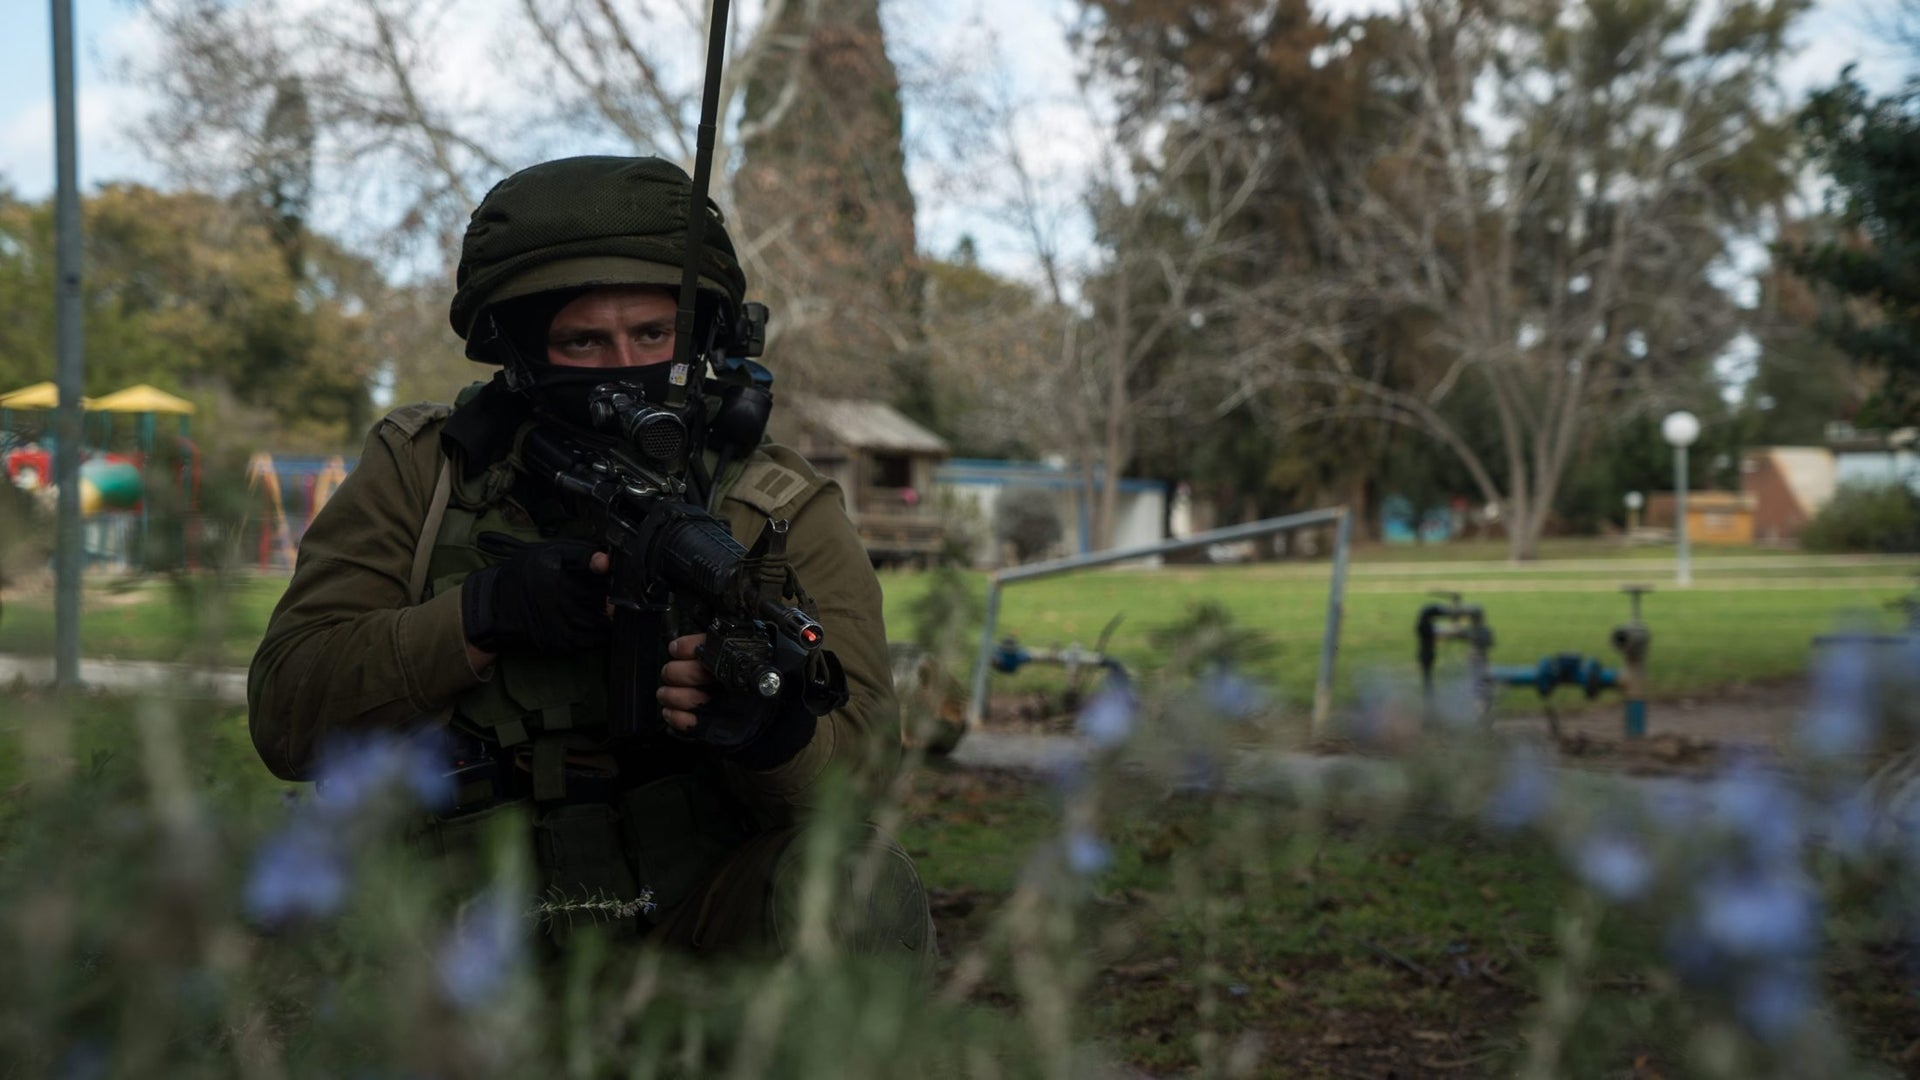 An Israeli soldier during a divisional exercise near the Gaza Strip in February 2017.